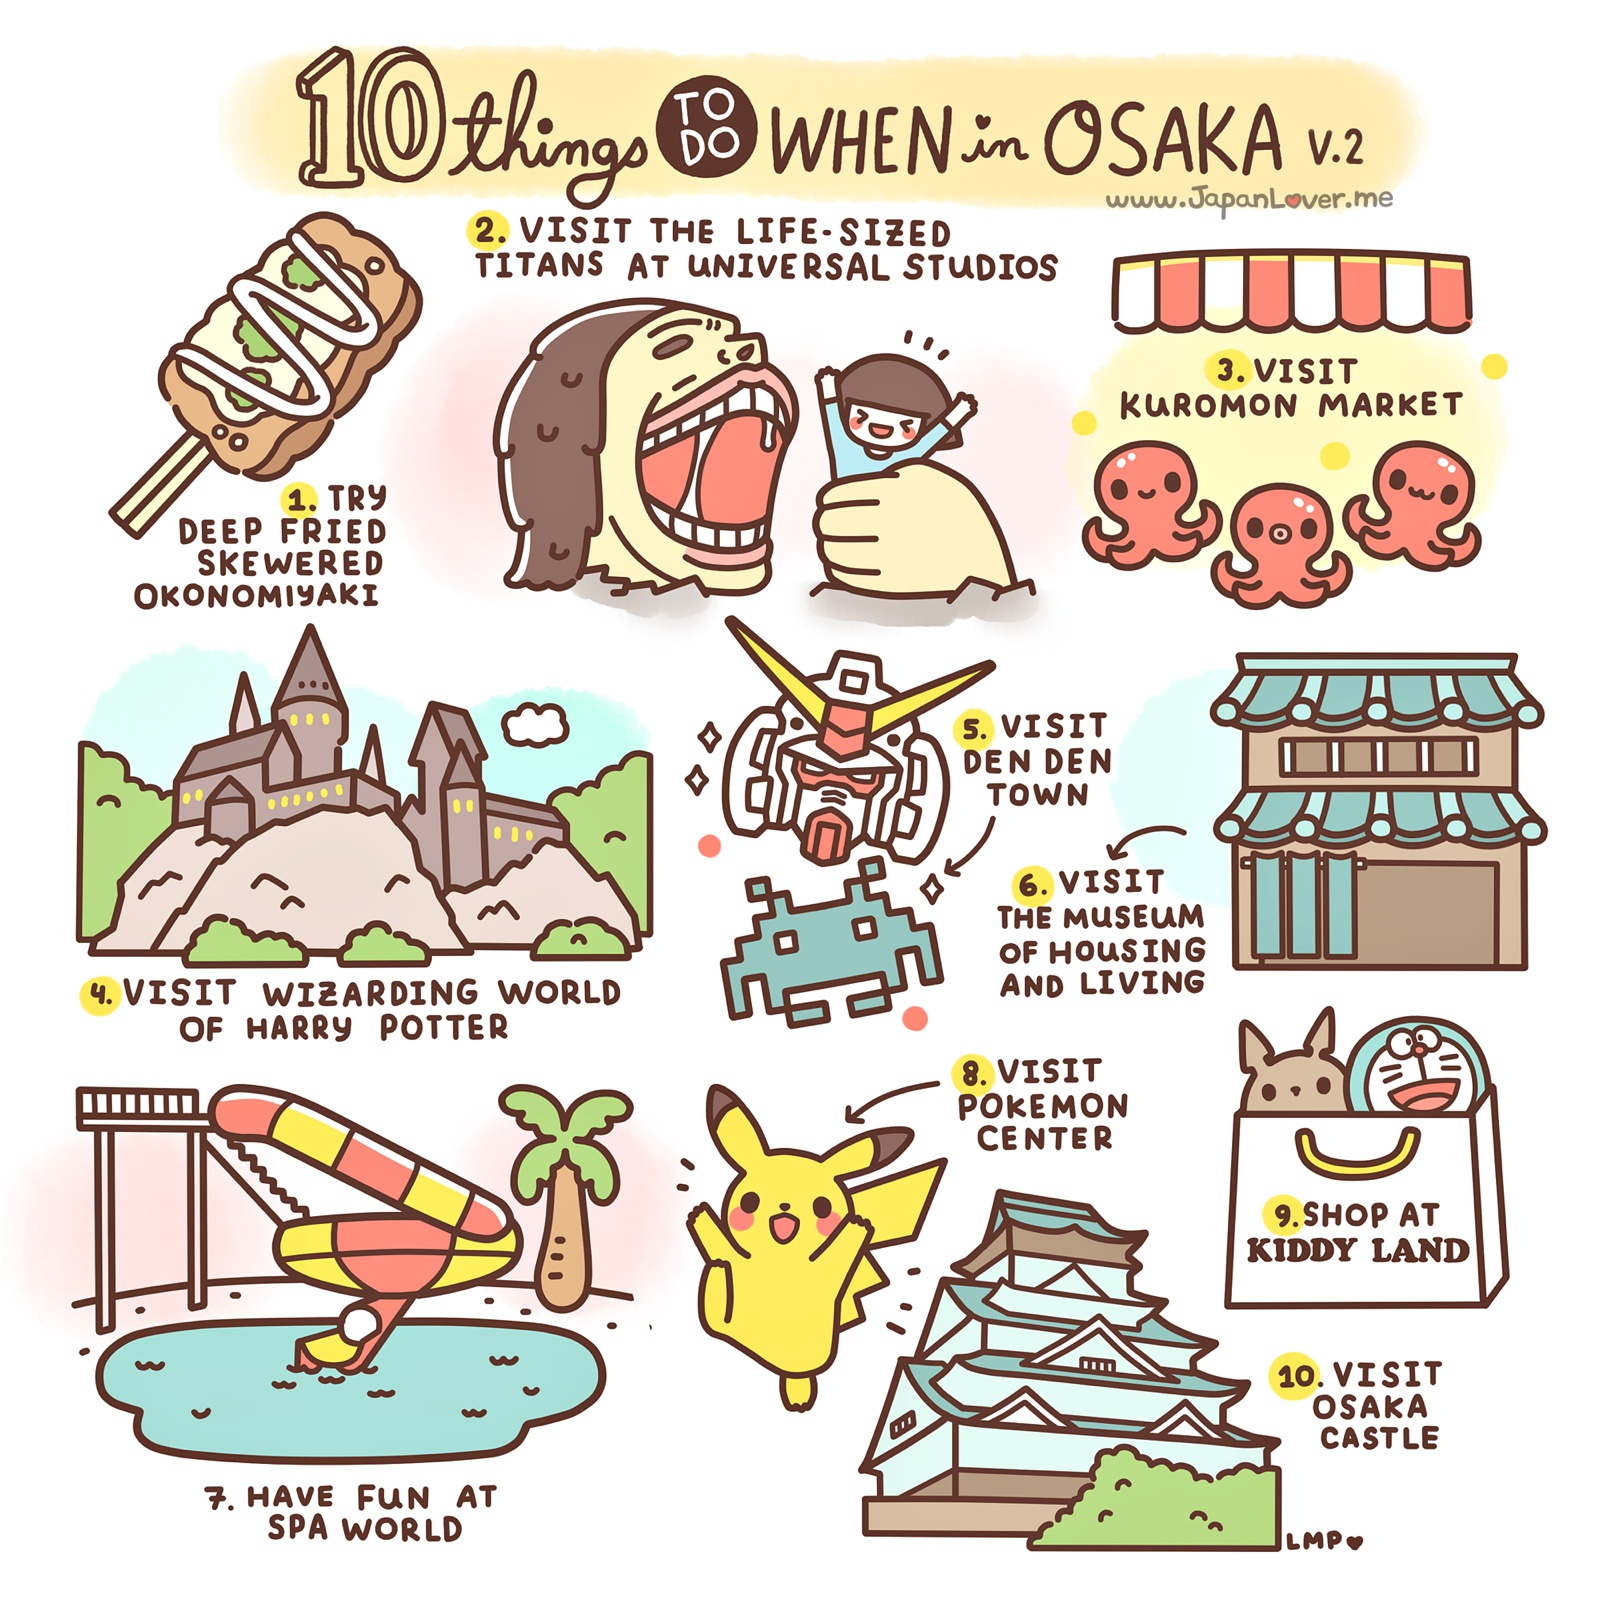 Osaka dating site